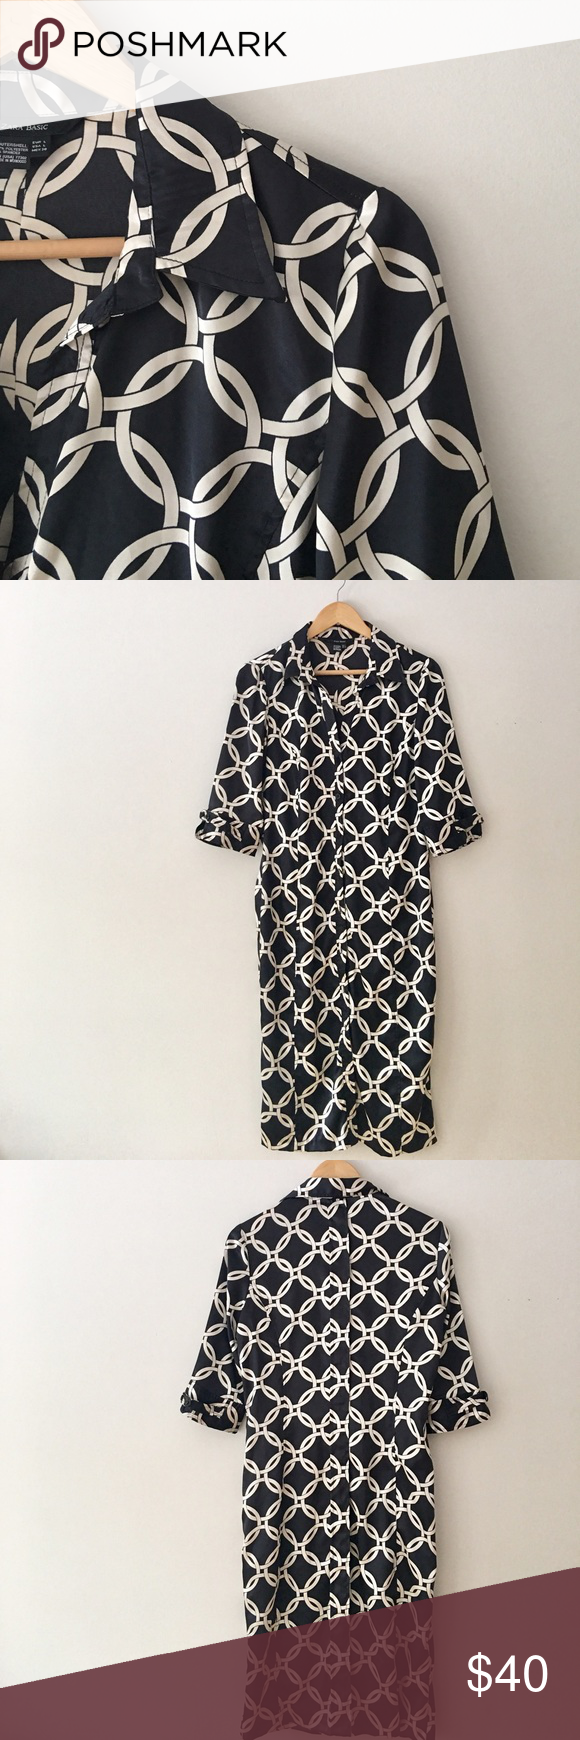 Zara Satin Shirtdress Gorgeous Zara shirt dress with a nautical theme. Photos do not do it justice. The fabric is silky with a satin sheen. Black/Ivory. Belt not included. One Sleeve has a run - pictured in photo #6 above. Size L. Great condition. Zara Dresses Midi